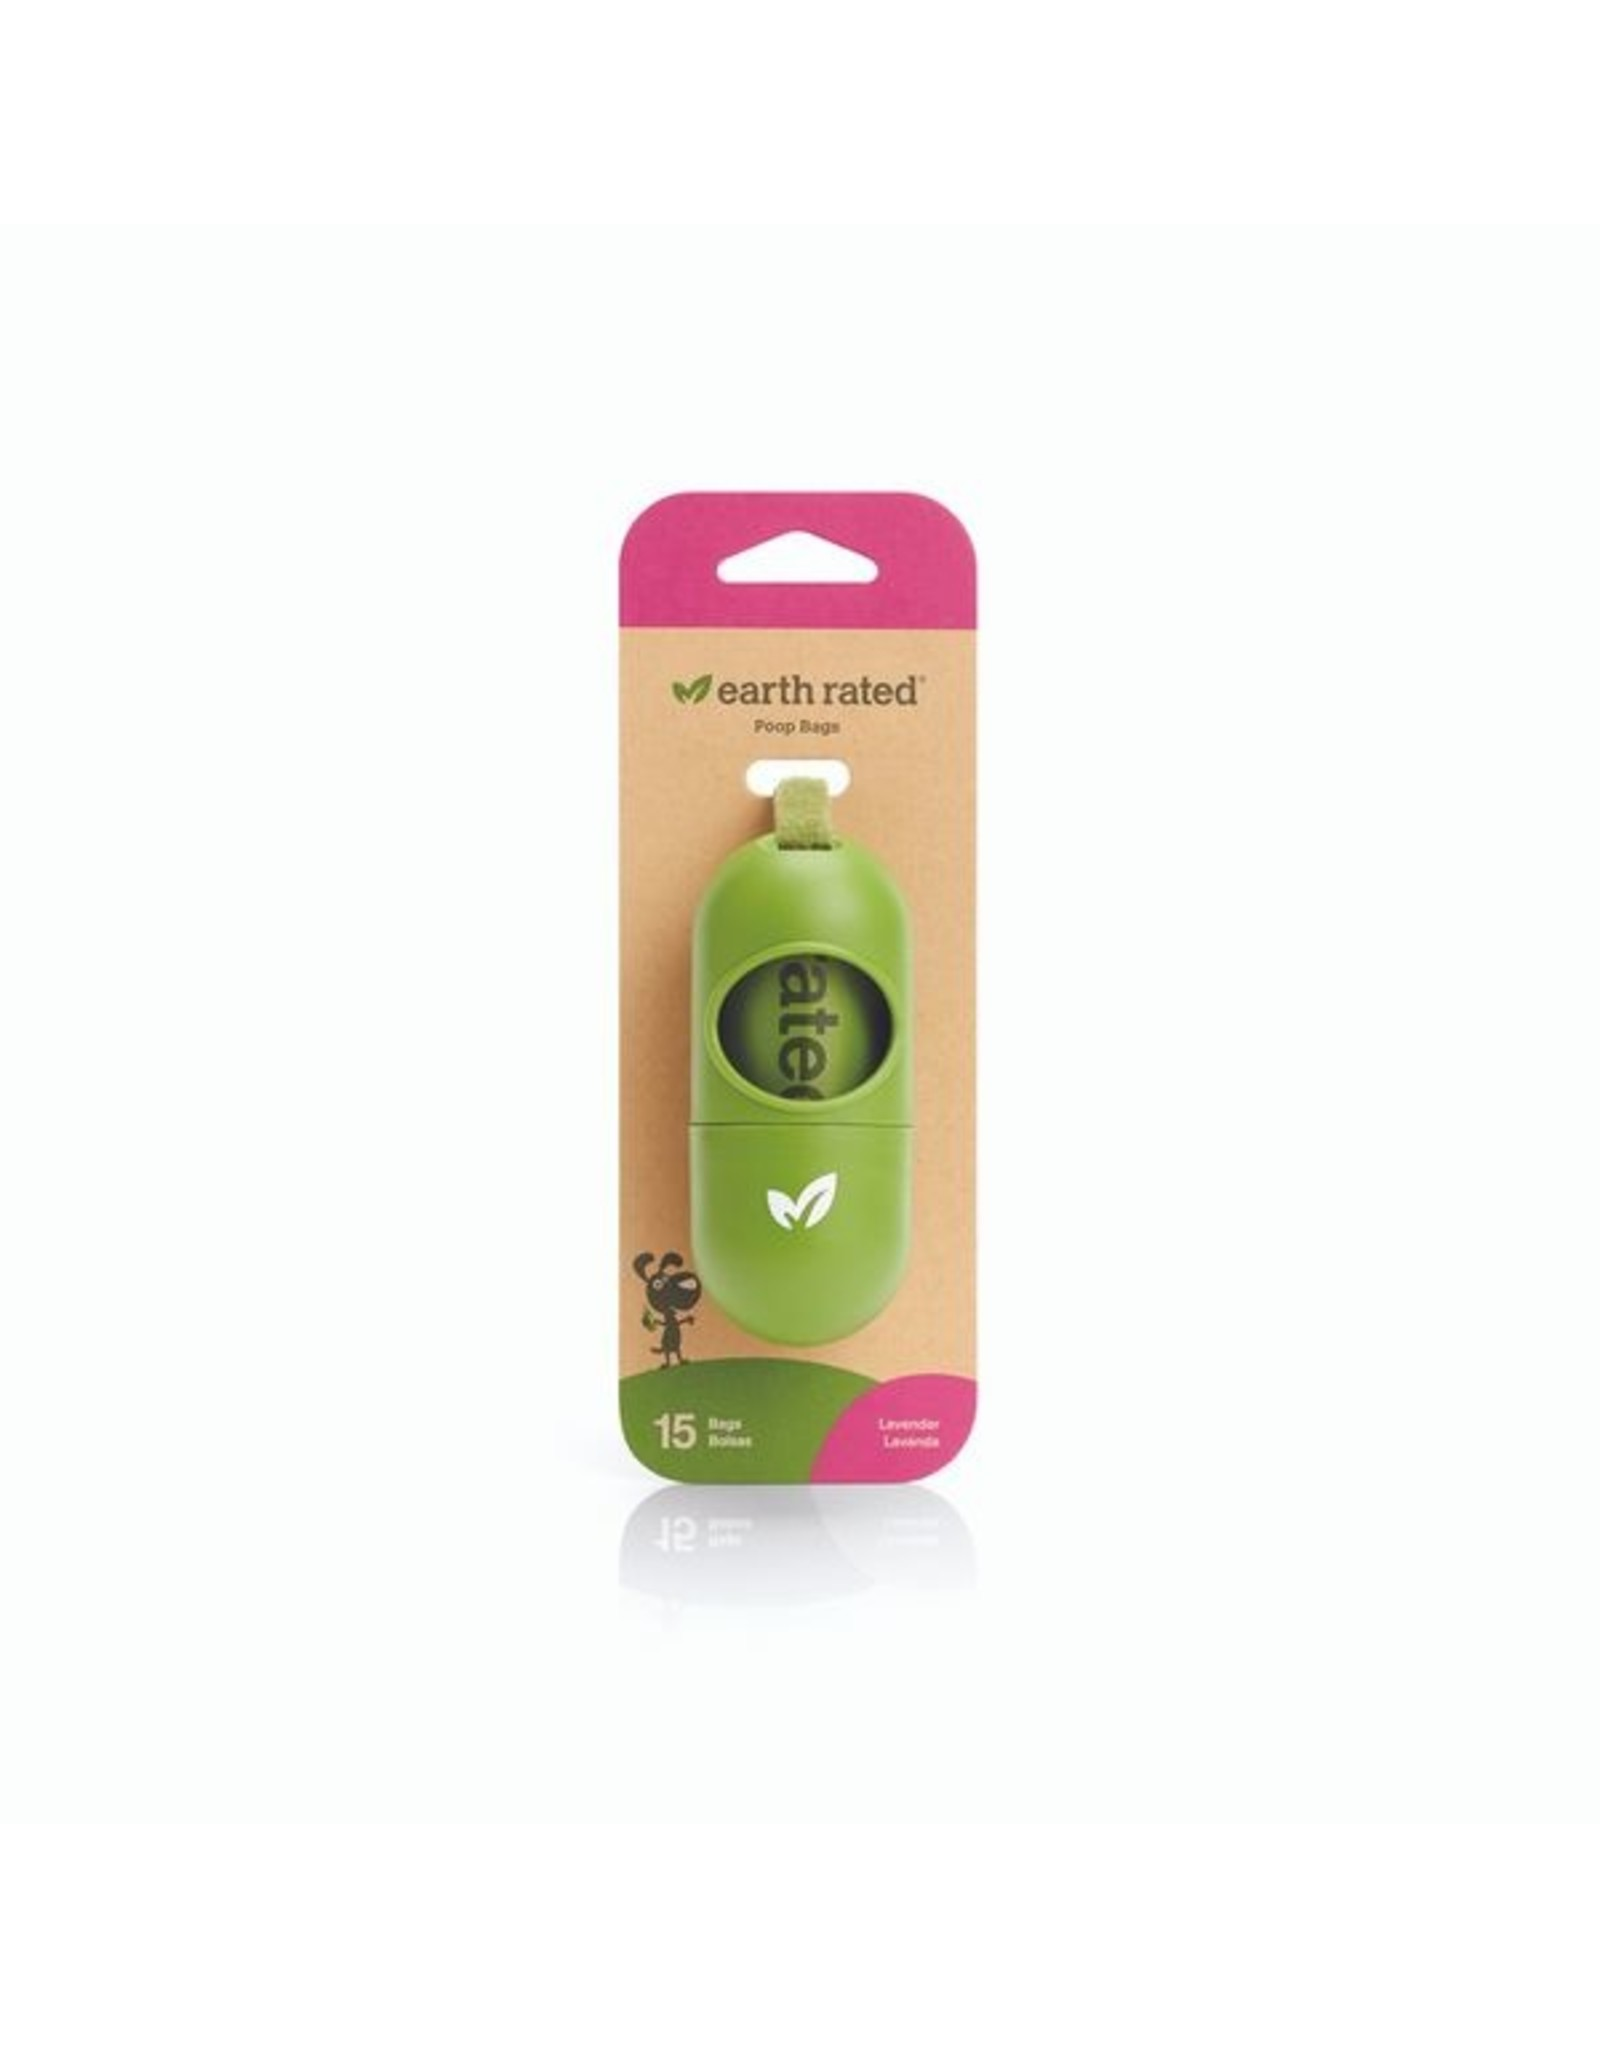 Earth Rated Earth Rated Green Dispenser W/ Scented Waste Bags